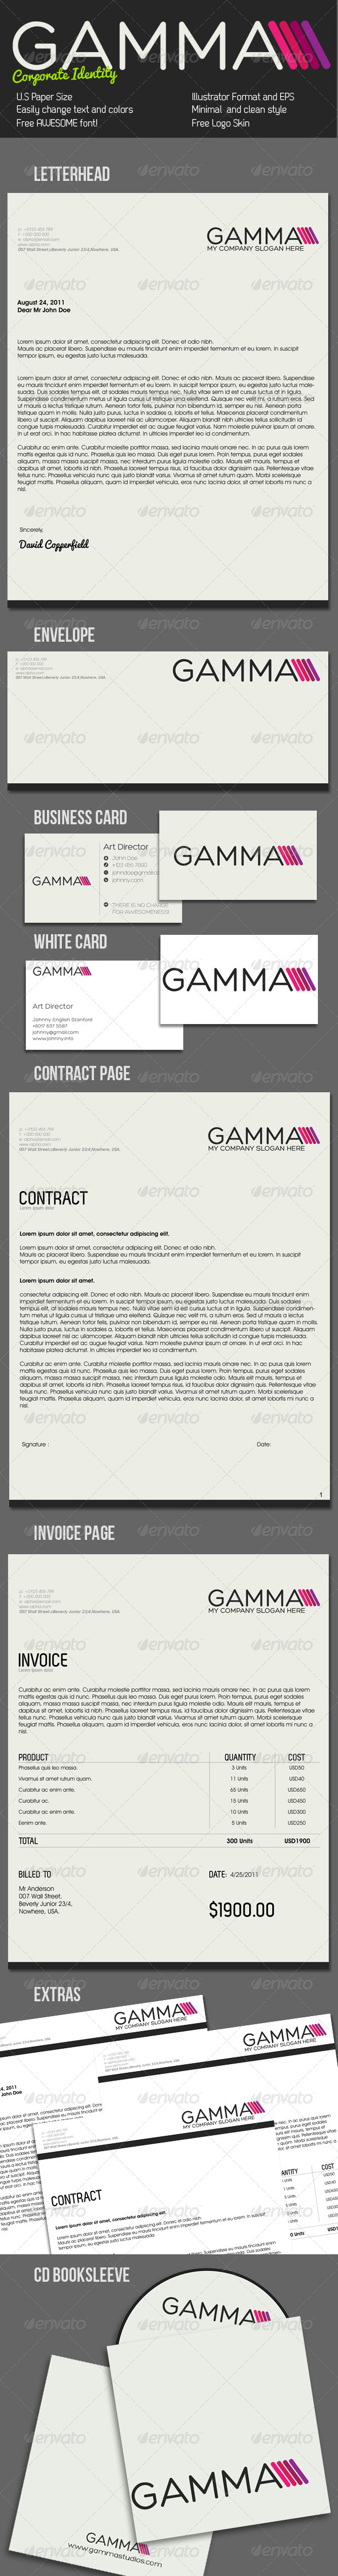 Gamma Clean Corporate Identity - Stationery Print Templates